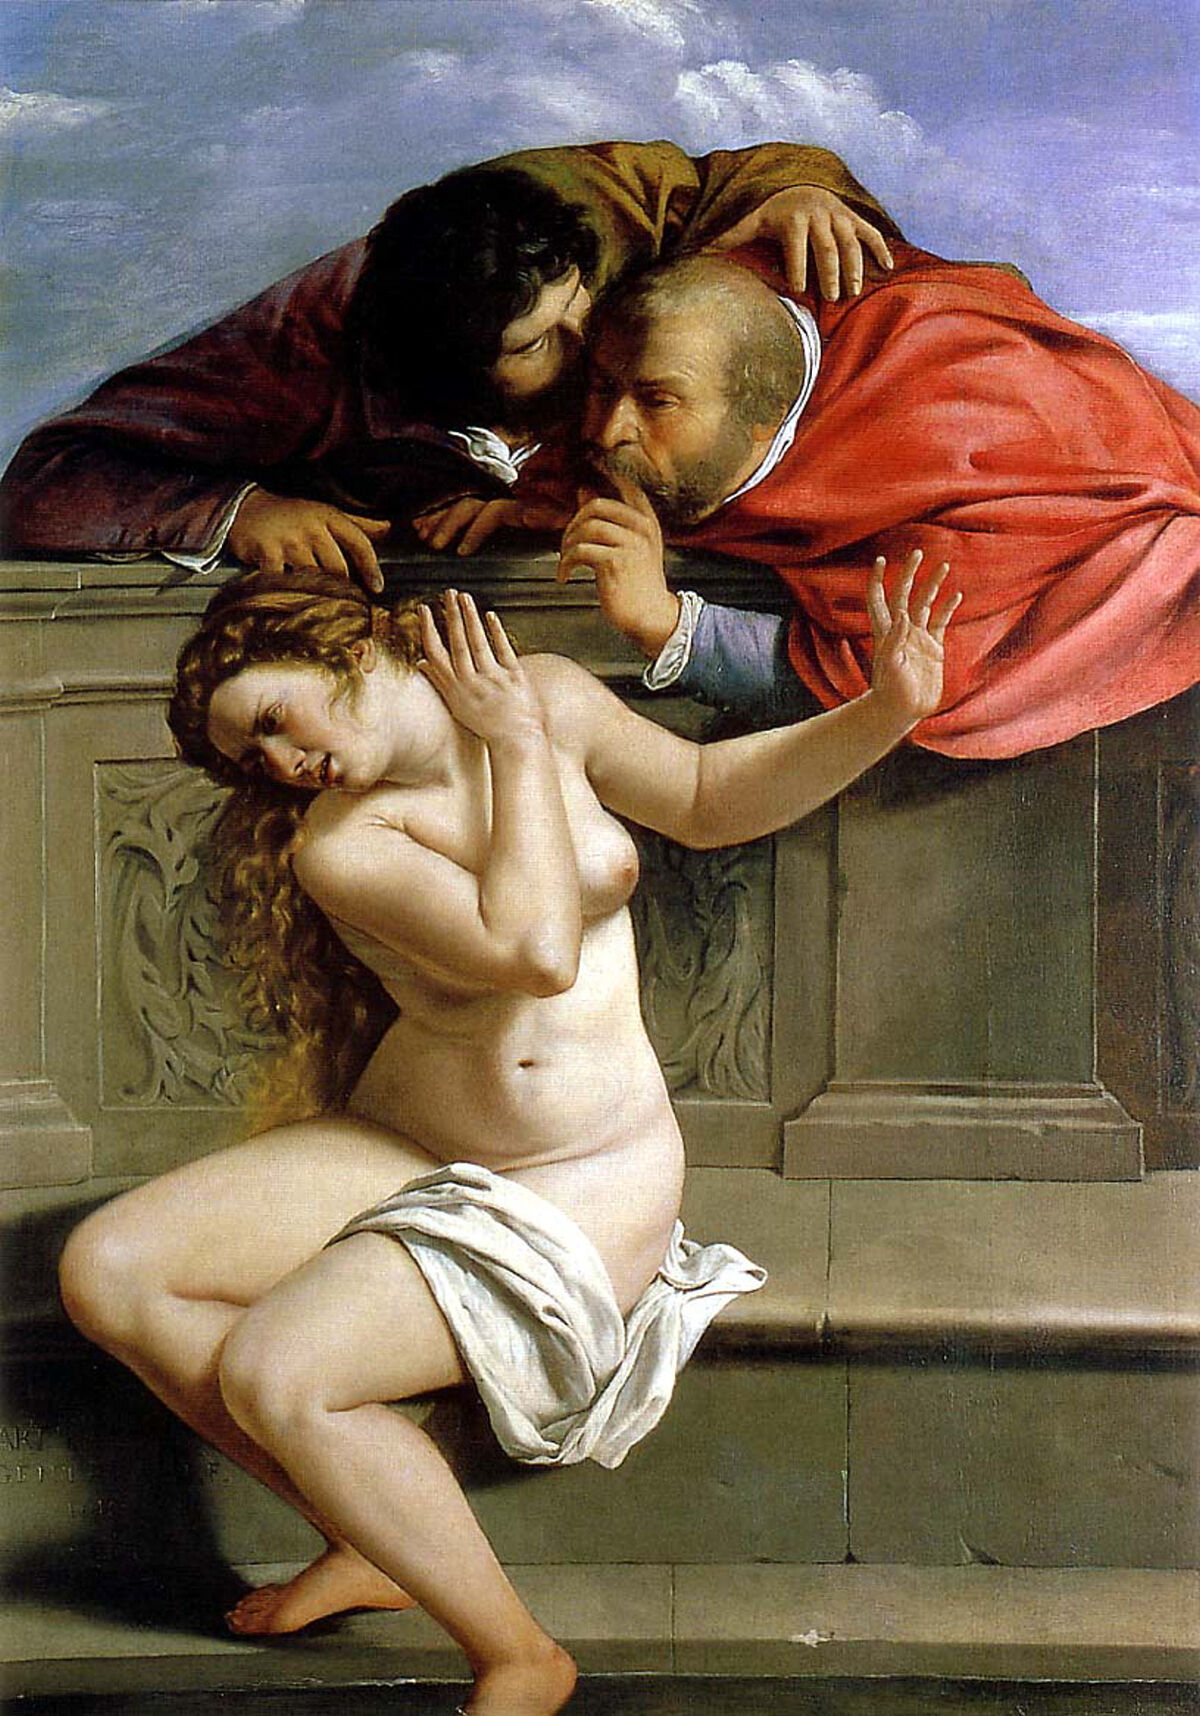 Artemisia Gentileschi, Susanna and the Elders, 1610. Photo via Wikimedia Commons.